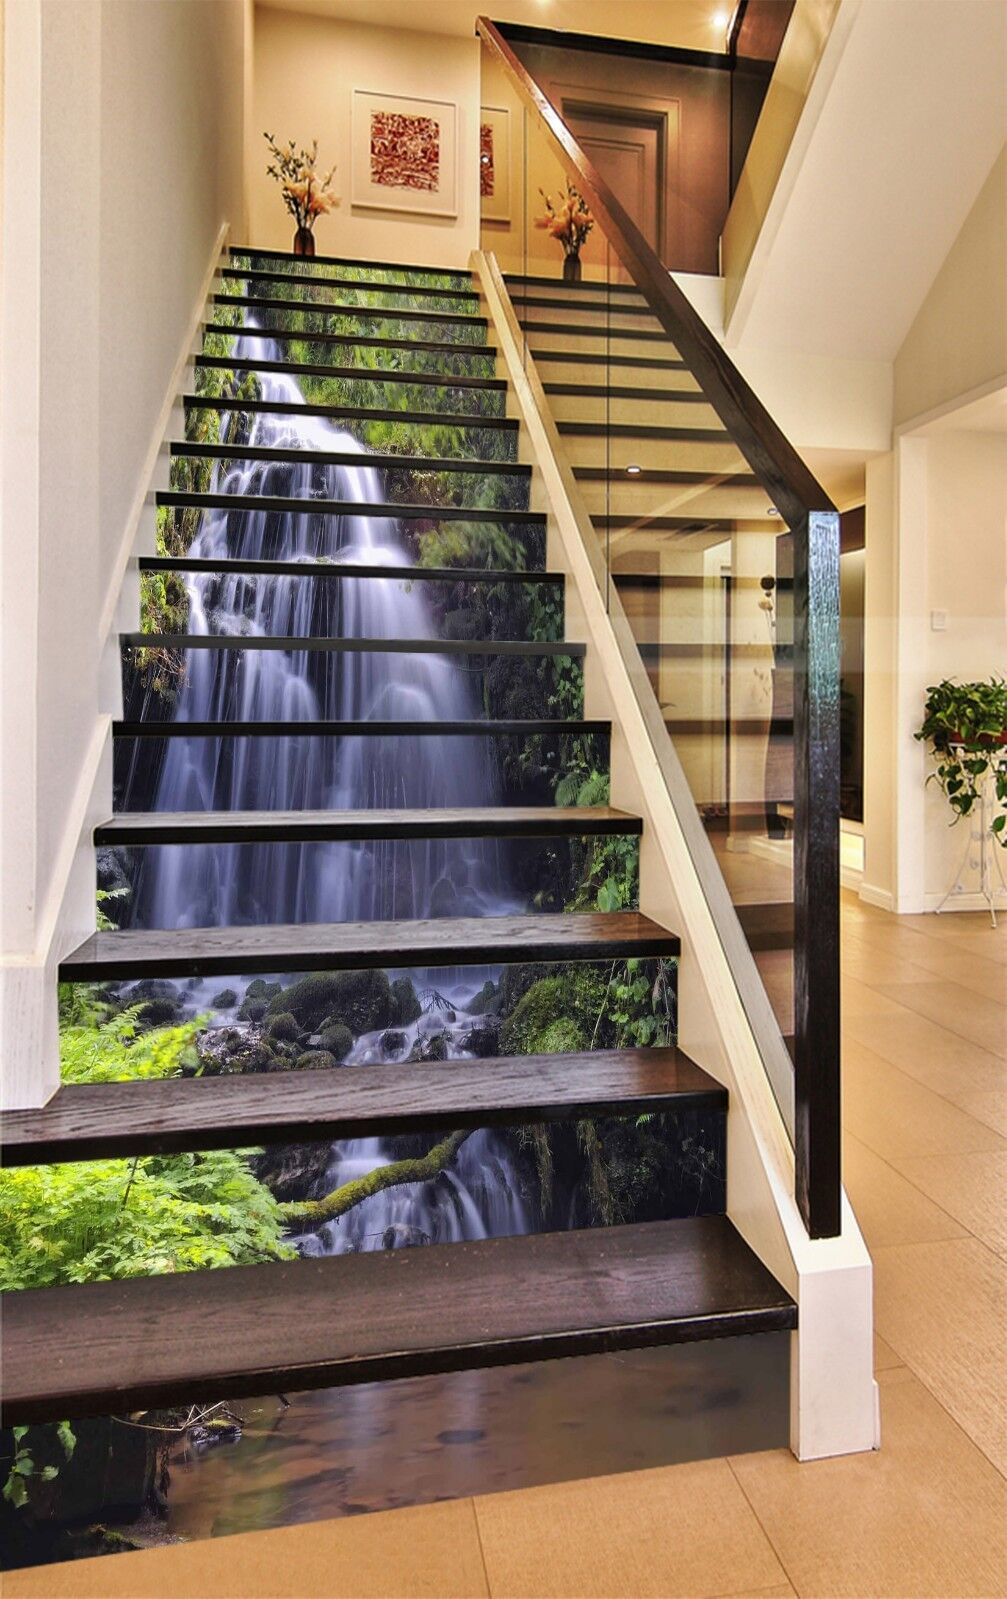 Rivulet 3D Tree Stair UK WandPapier Decal Vinyl Mural Photo ...